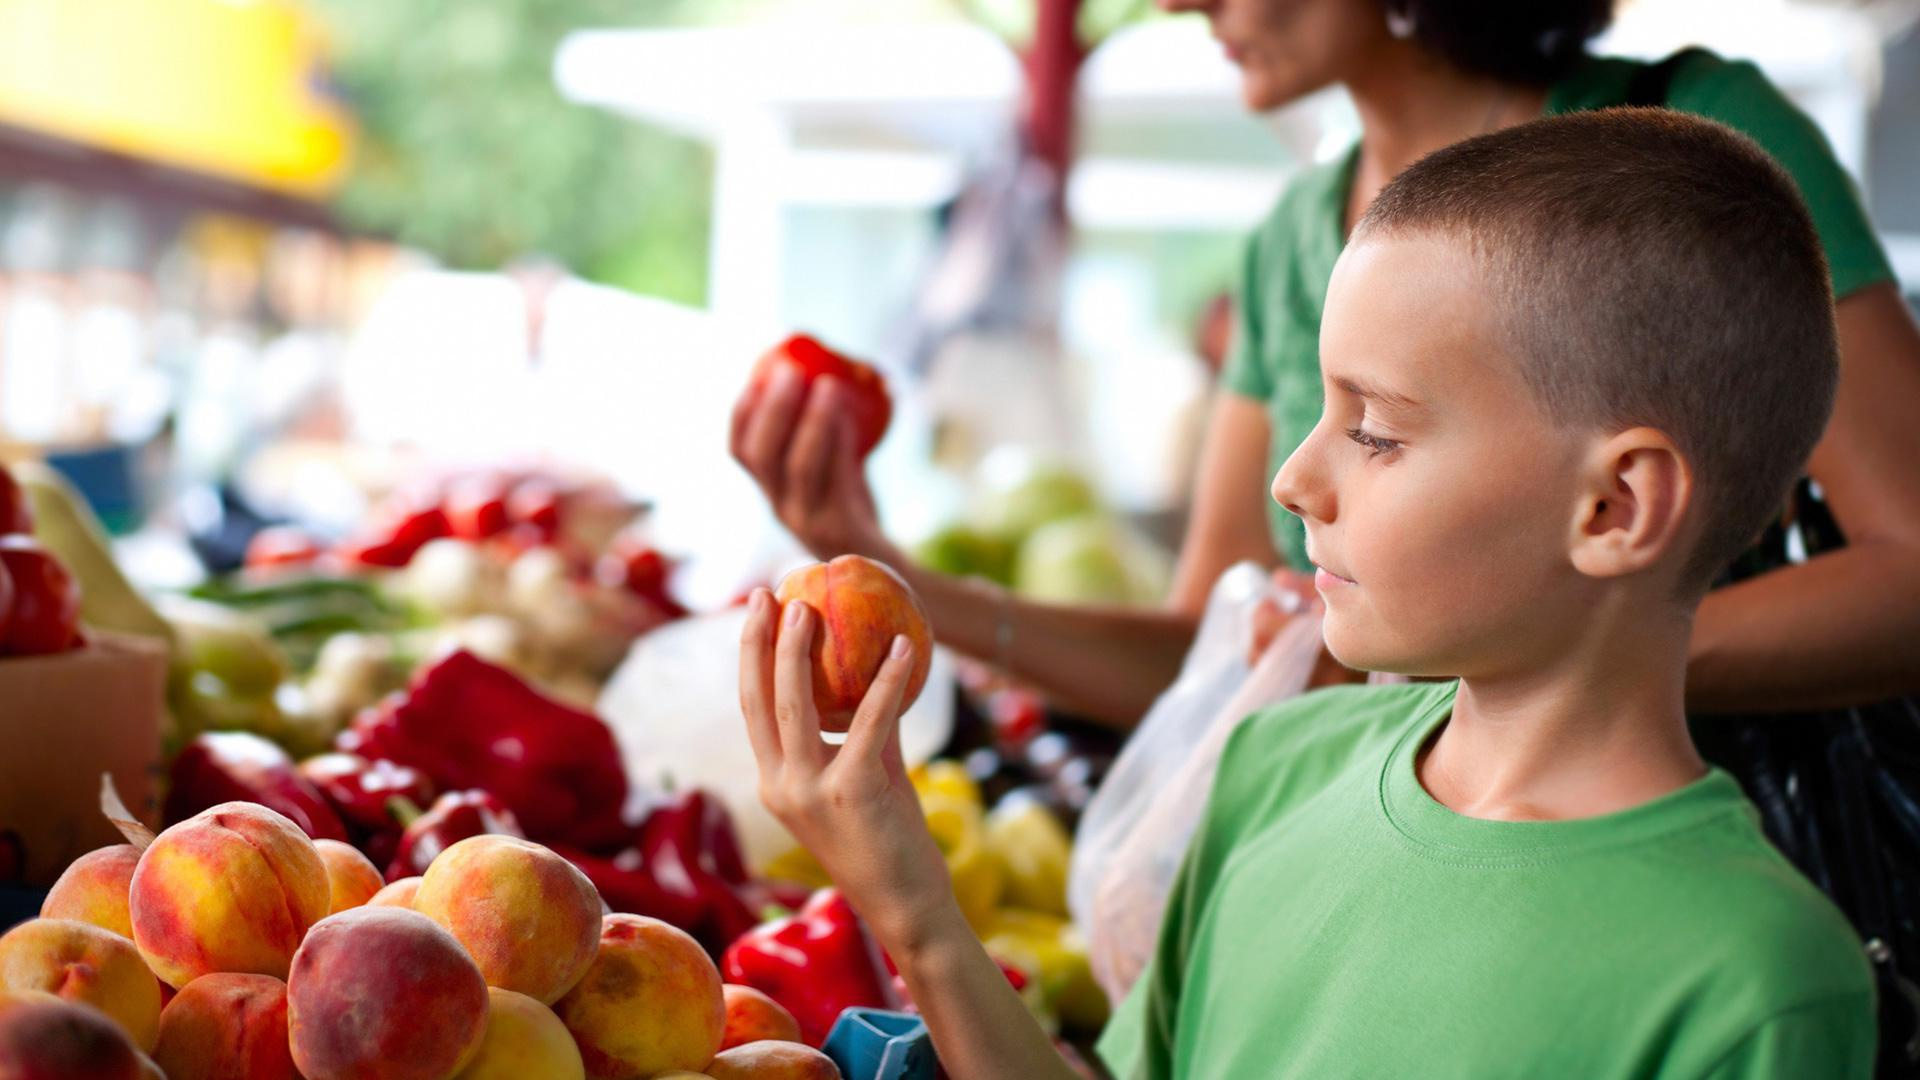 Is a vegan diet healthy for kids?